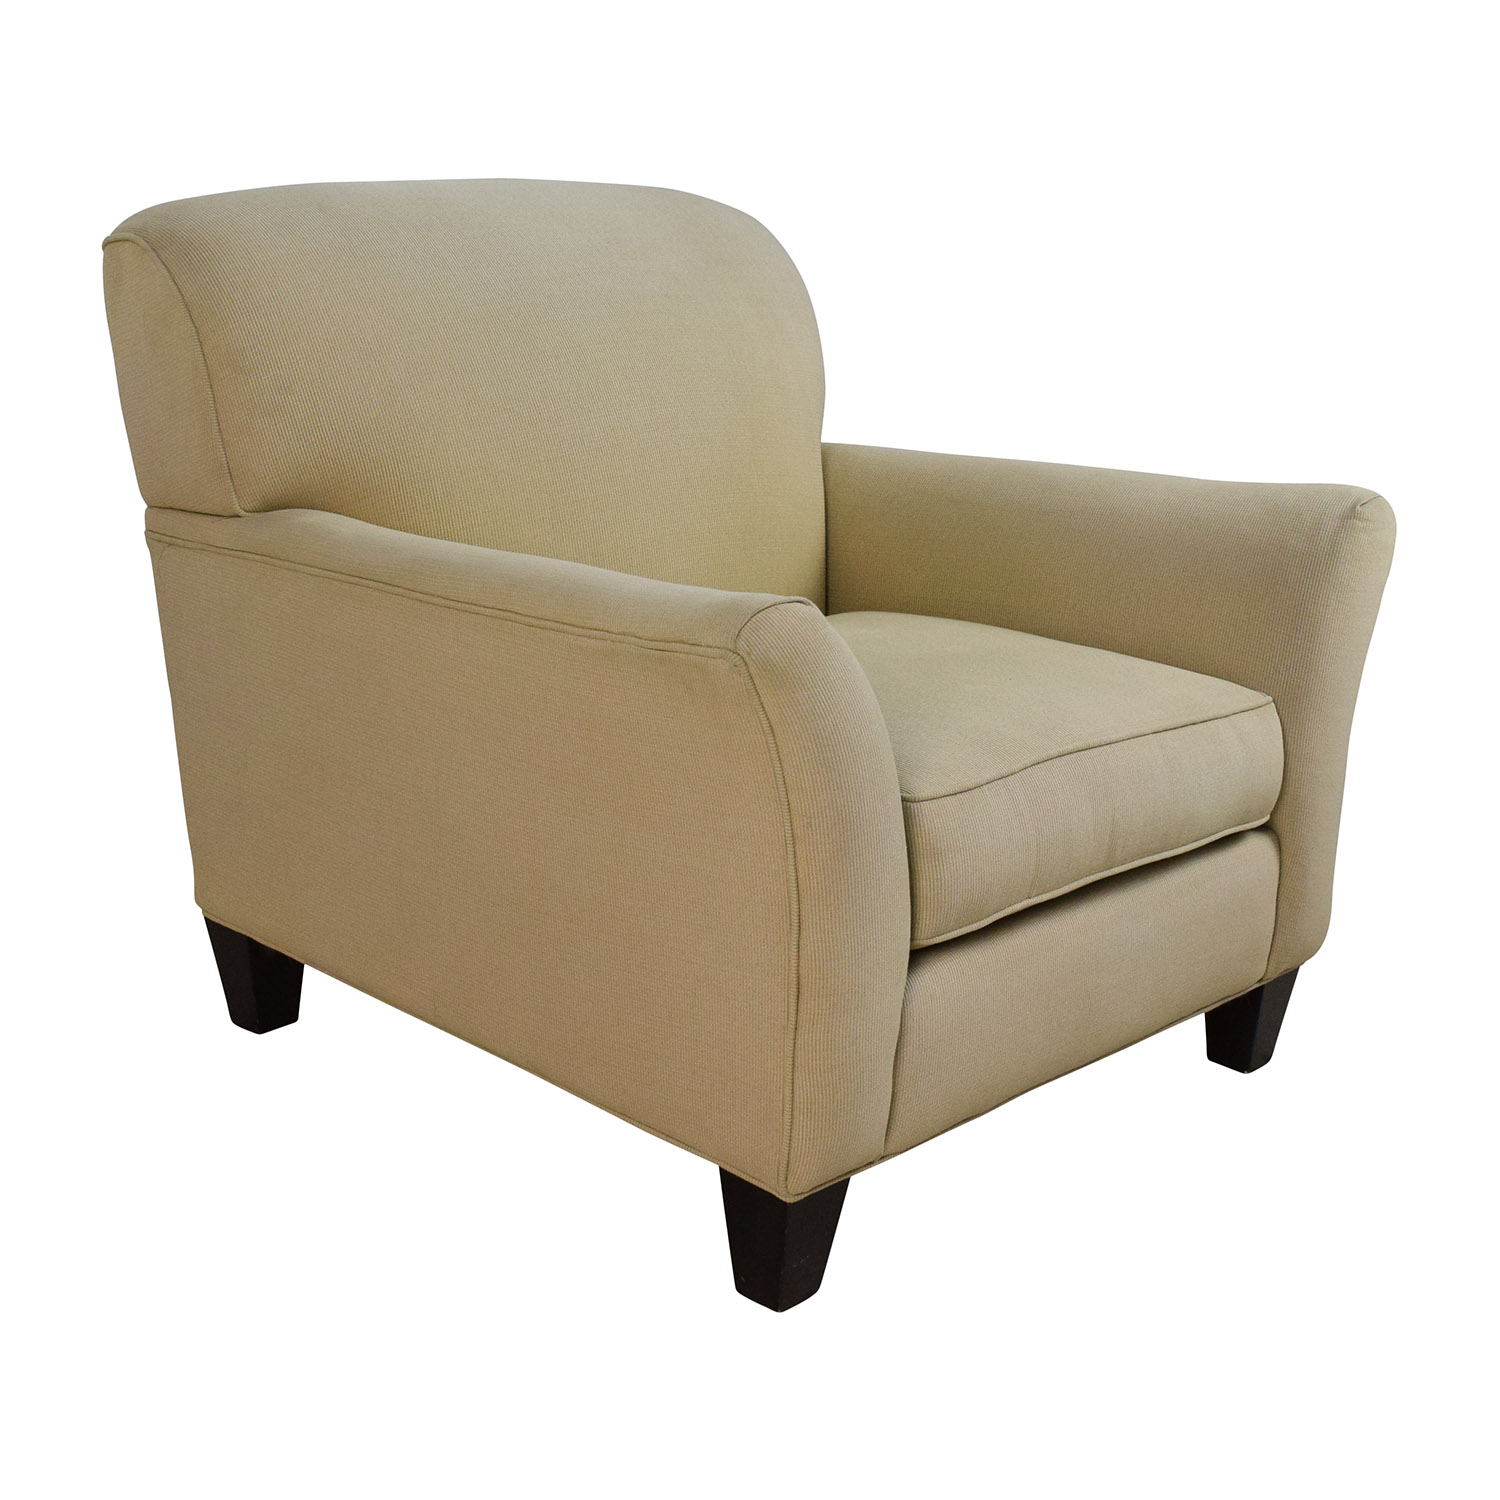 Italian Sofa Chairs 90 Off Rowe Furniture Rowe Furniture Capri Beige Sofa